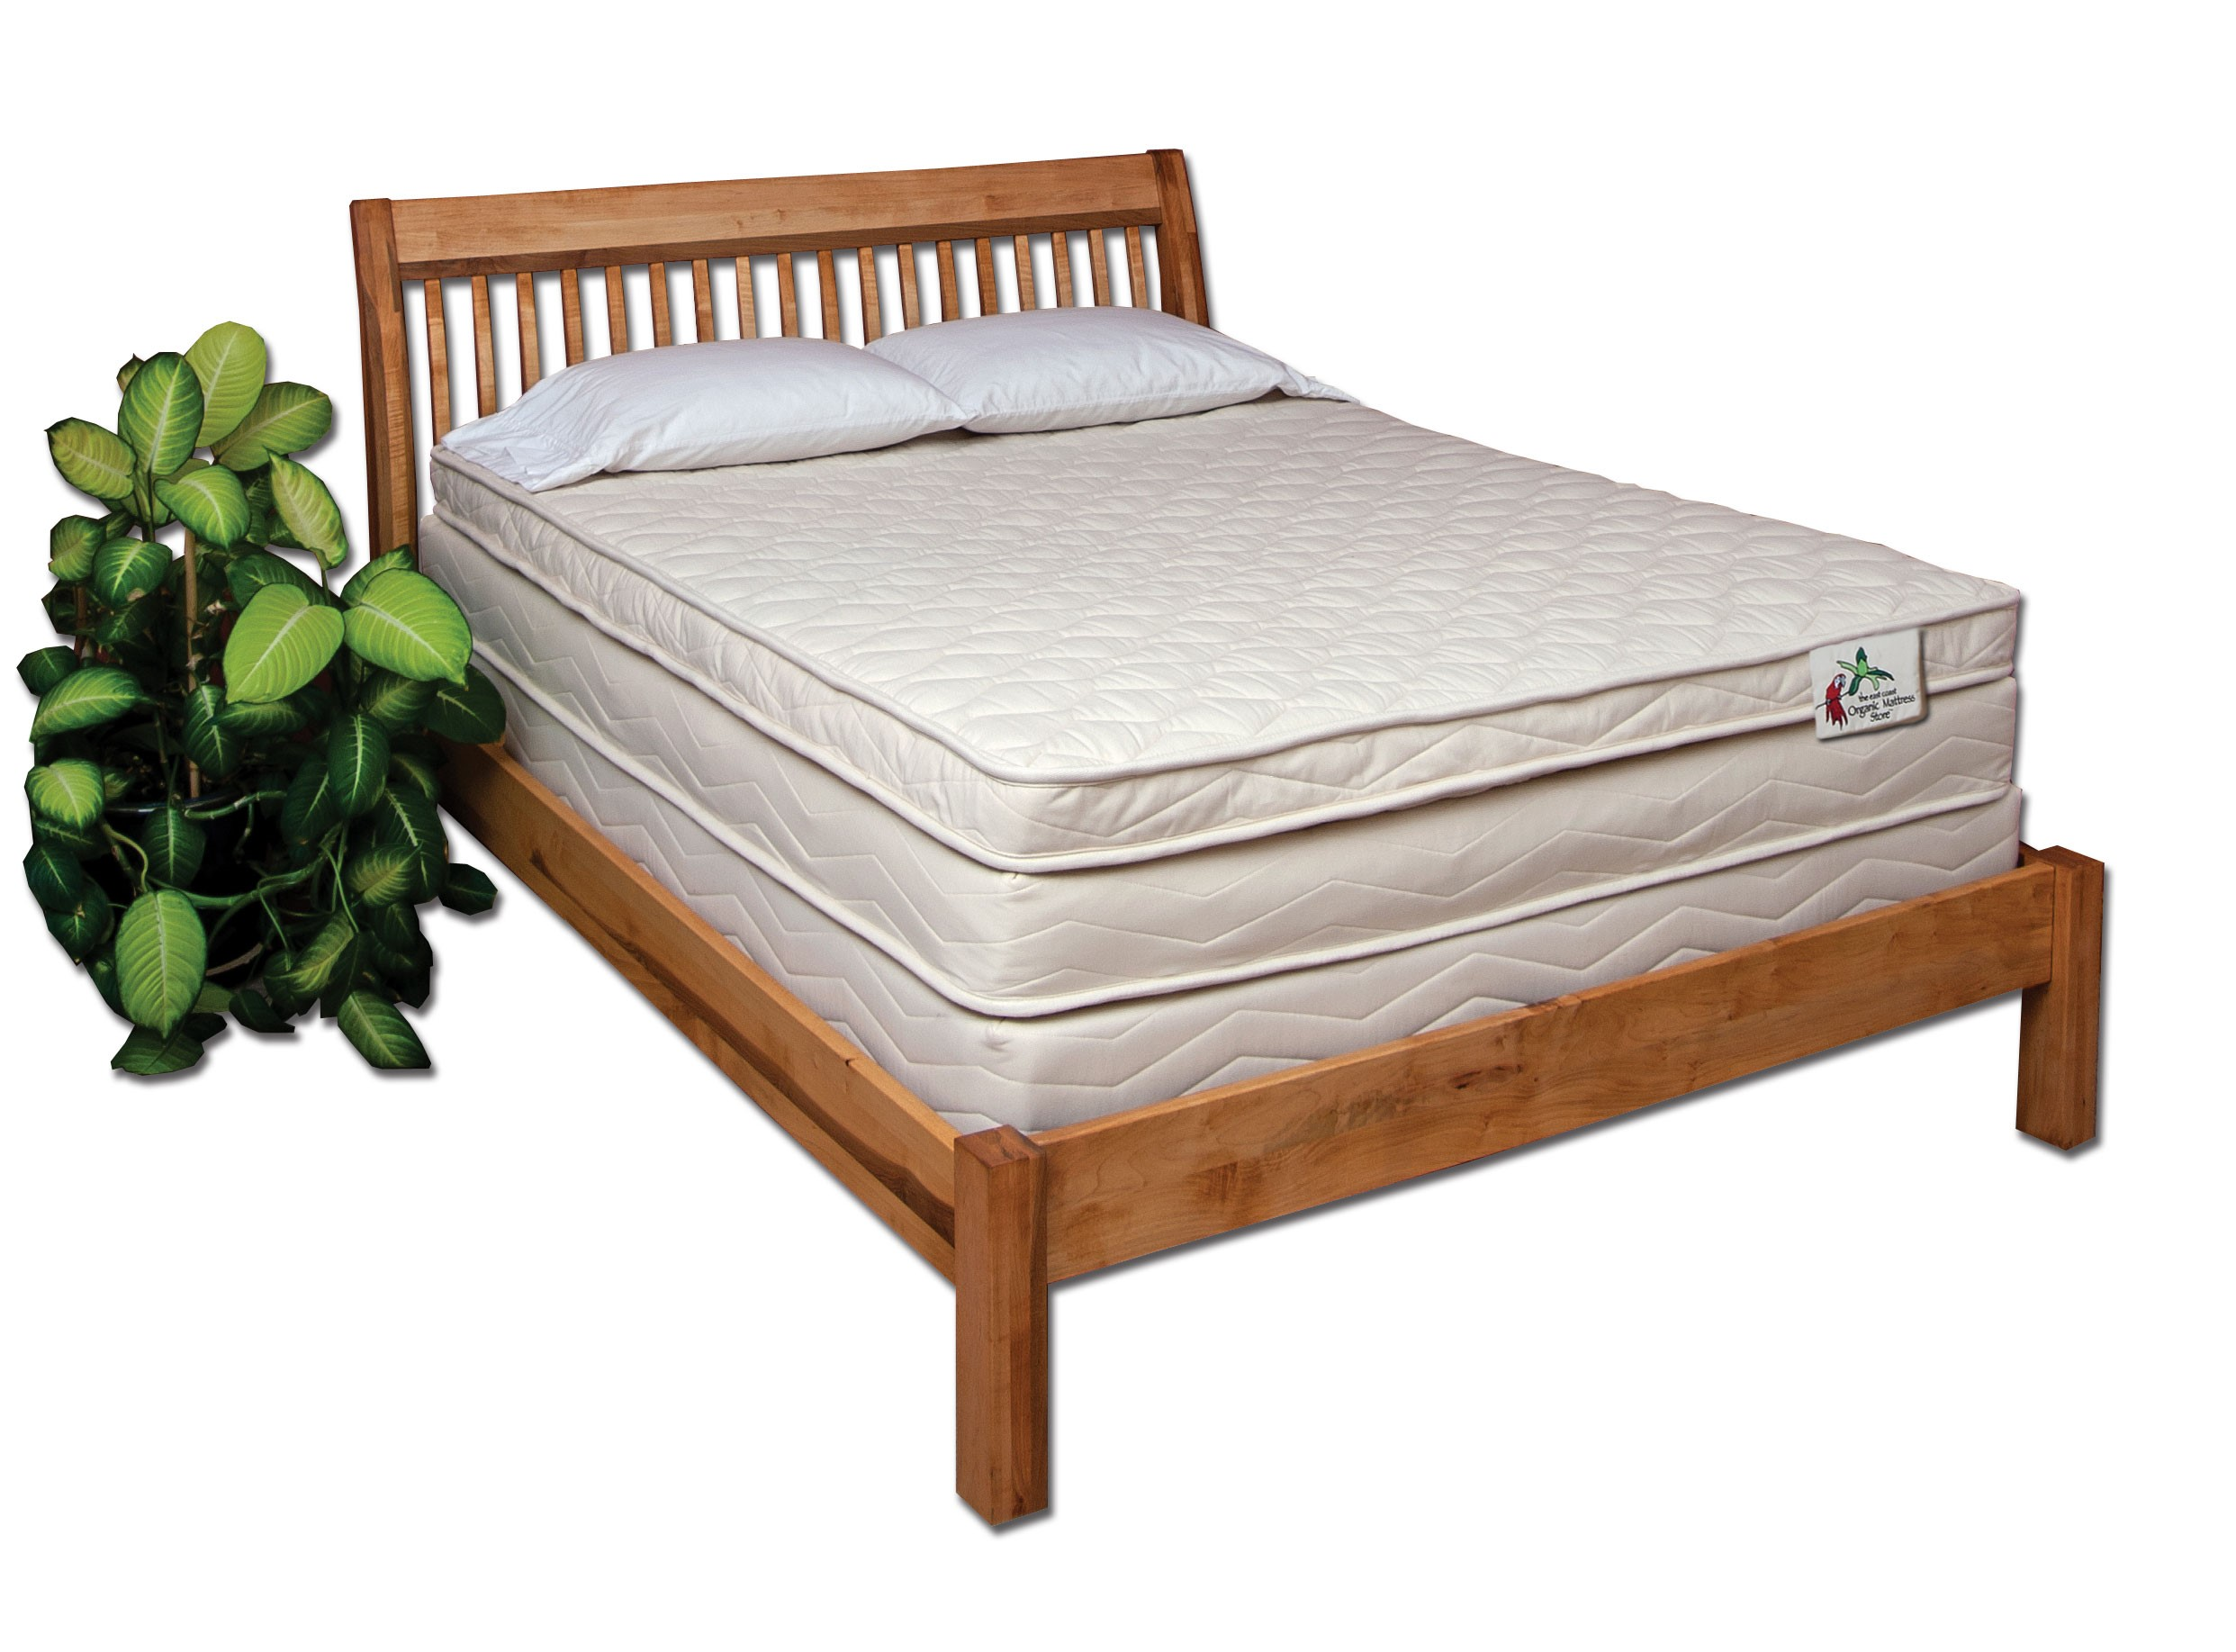 if you are not satisfied having the perfect organic mattress then it may be time to consider upgrading your bed too choosing a natural wood bed frame can - Natural Wood Bed Frame